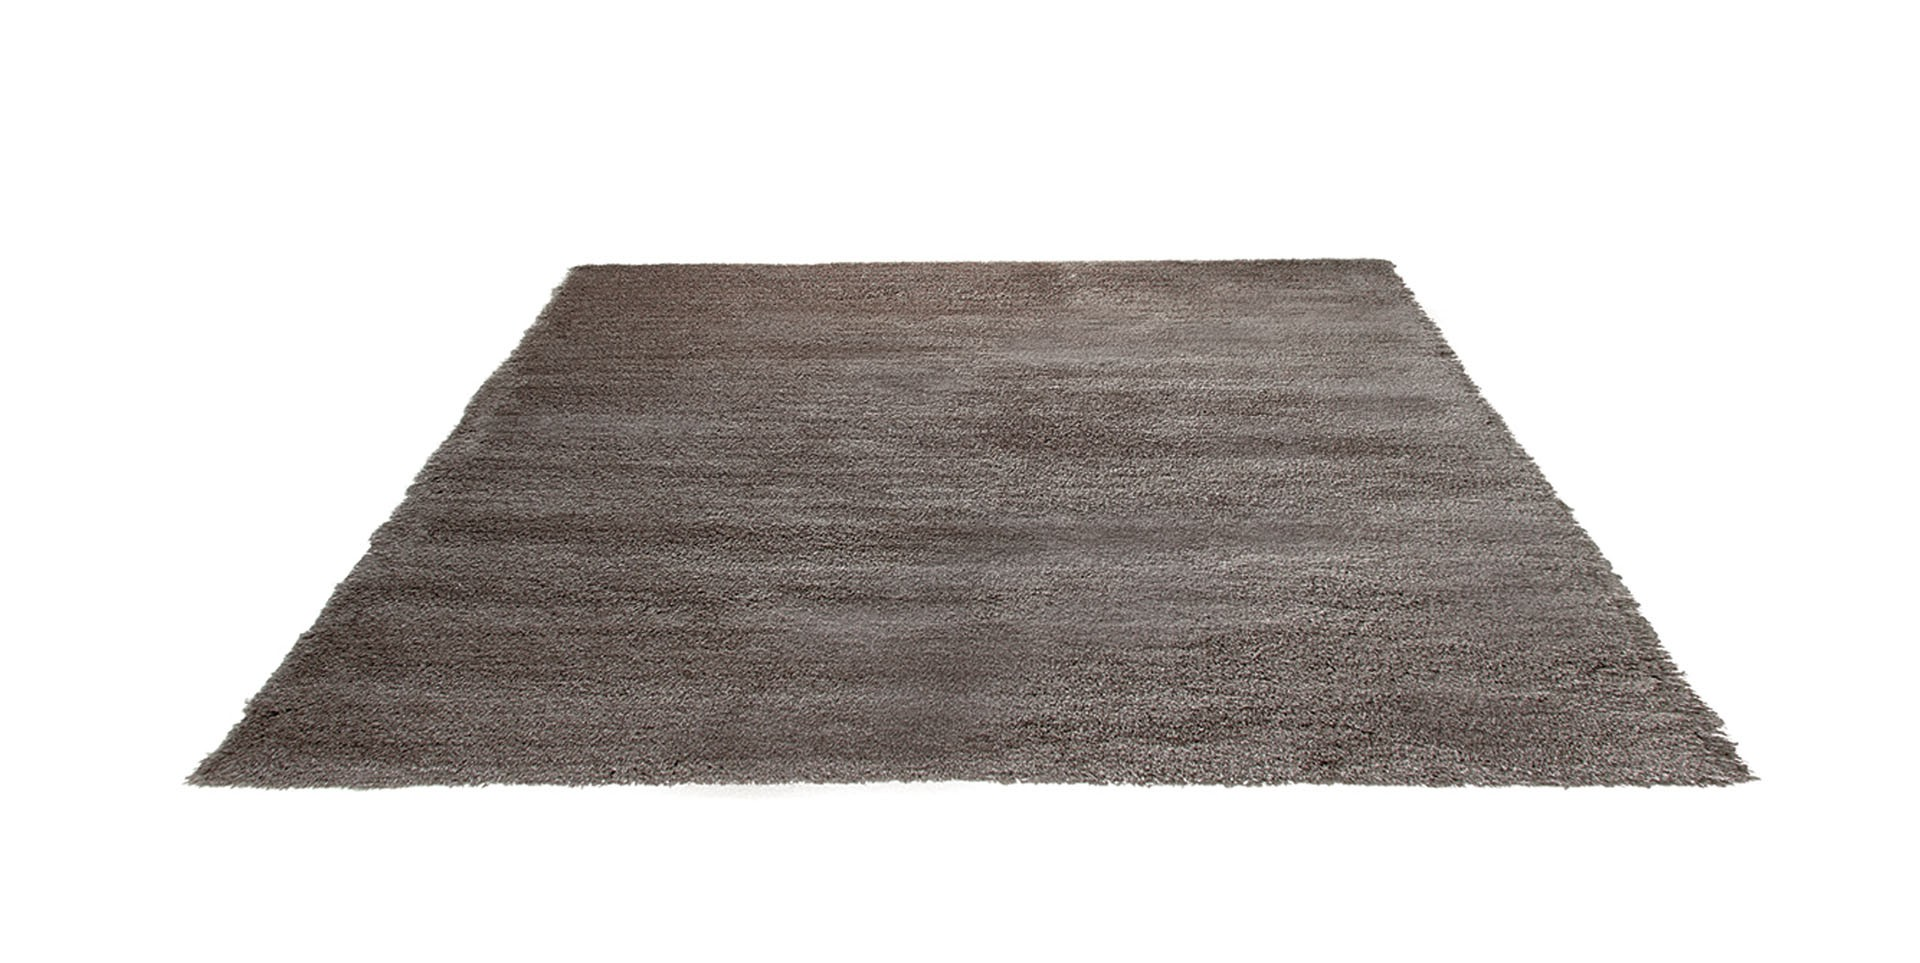 tapis shaggy en polyester et laine taupe wool glamour par. Black Bedroom Furniture Sets. Home Design Ideas